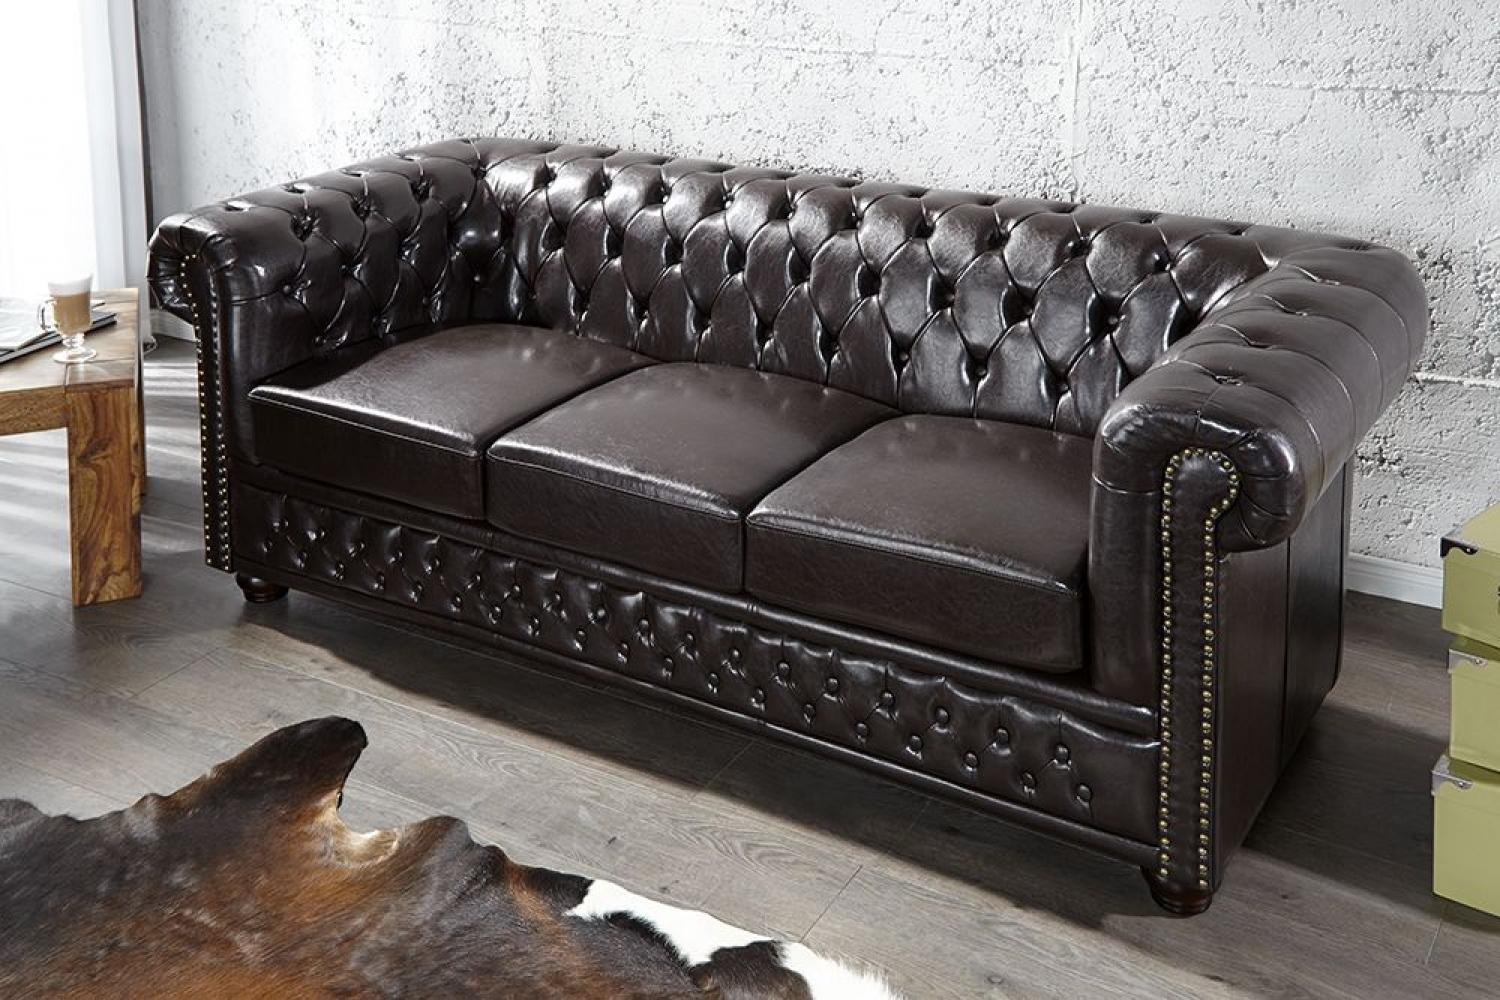 Canape chesterfield pas cher - Canape chesterfield but ...